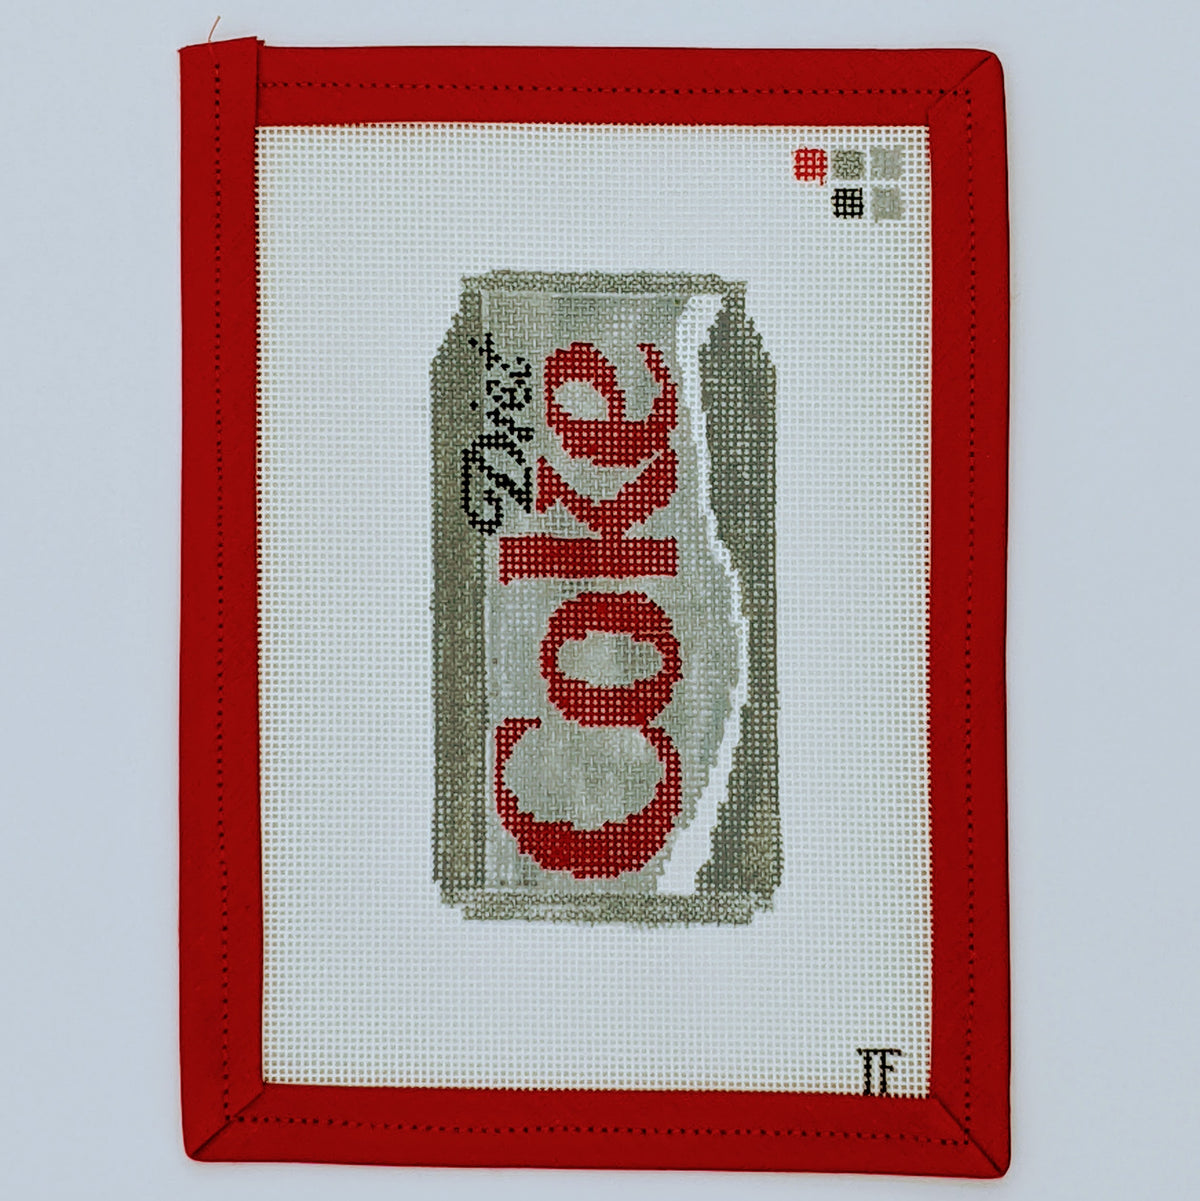 Diet Coke soda can ornament